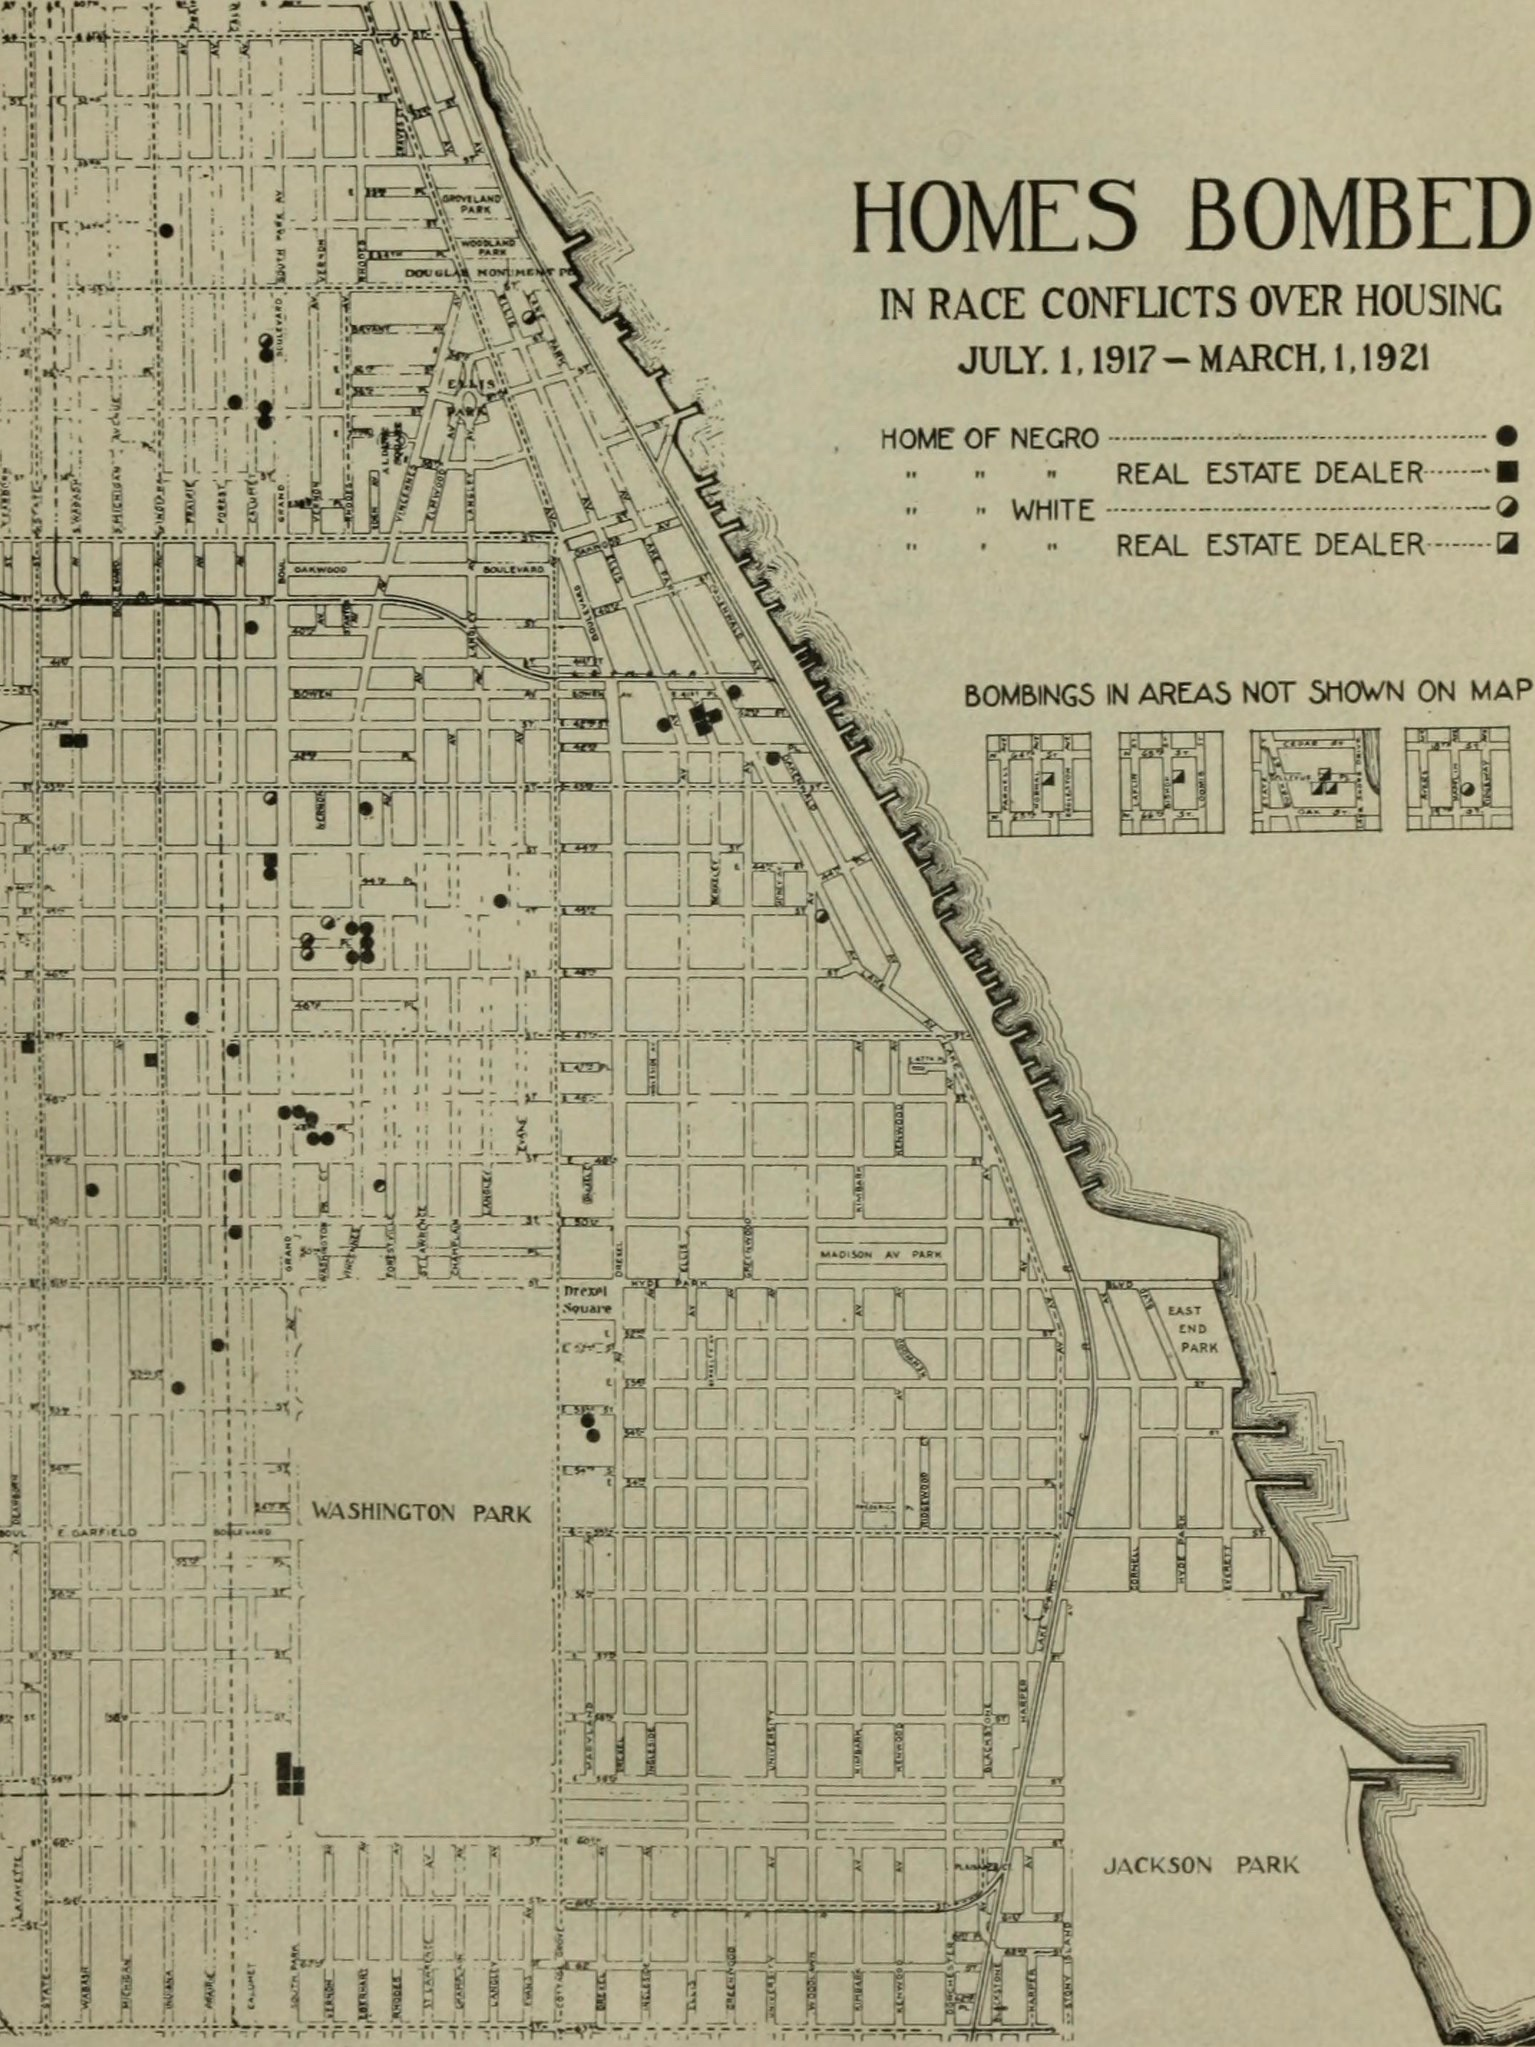 """A page from """"The Negro in Chicago"""" showing the sites of racial bombings between 1917 and 1921."""